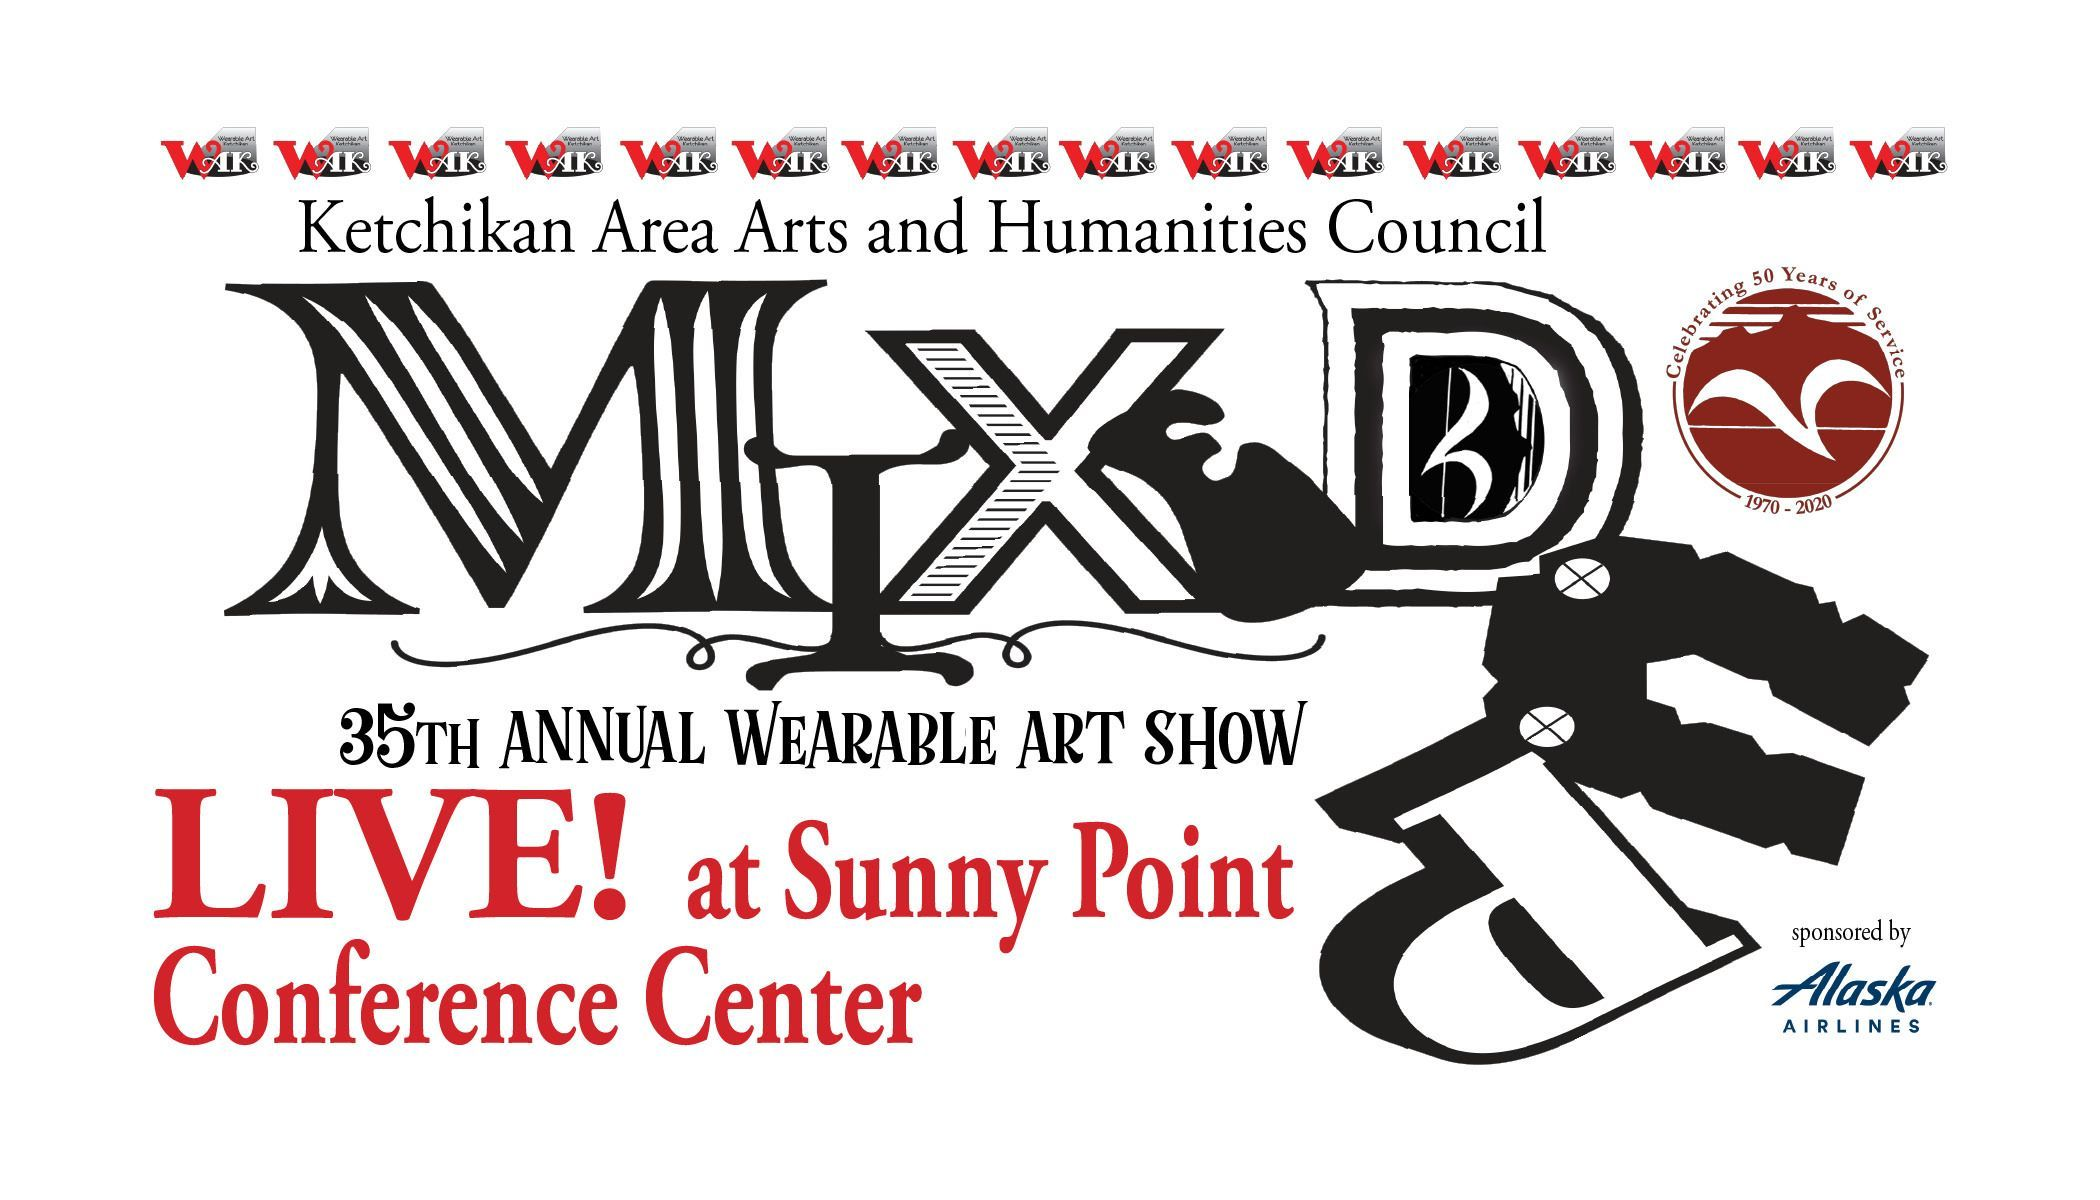 """Mixed Up"" the 35th Annual Wearable Art Show LIVE at the Sunny Point Conference Center SOLD OUT!"